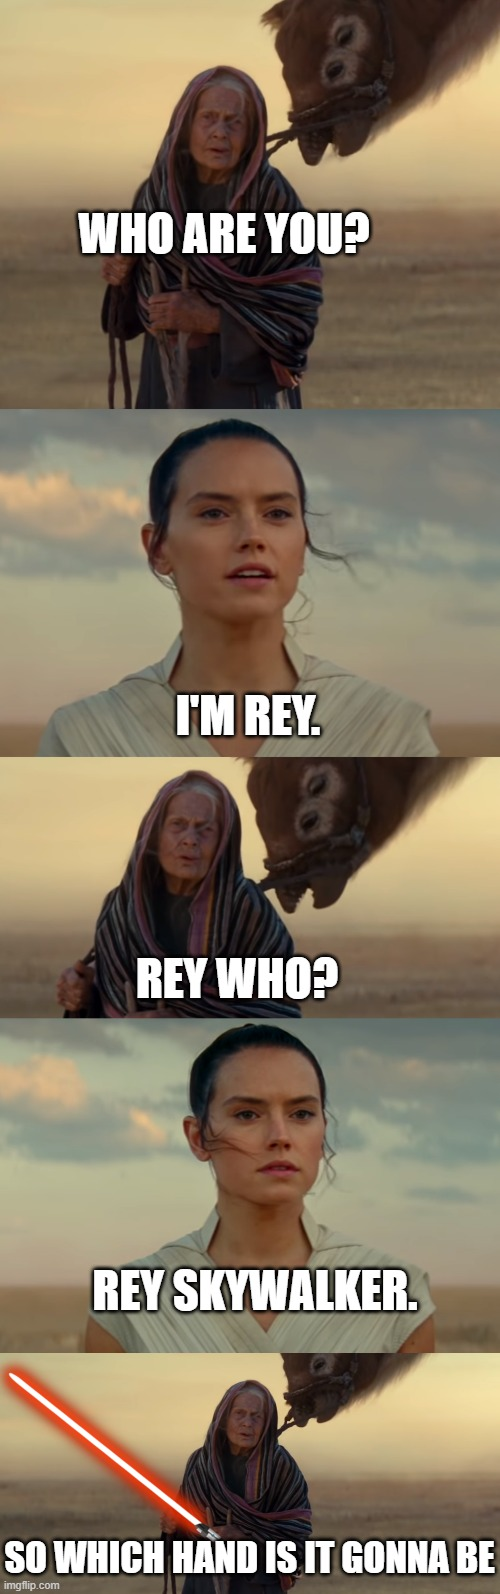 Rey Skywalker |  WHO ARE YOU? I'M REY. REY WHO? REY SKYWALKER. SO WHICH HAND IS IT GONNA BE | image tagged in star wars,rey,skywalker,the rise of skywalker,lightsaber,jedi | made w/ Imgflip meme maker